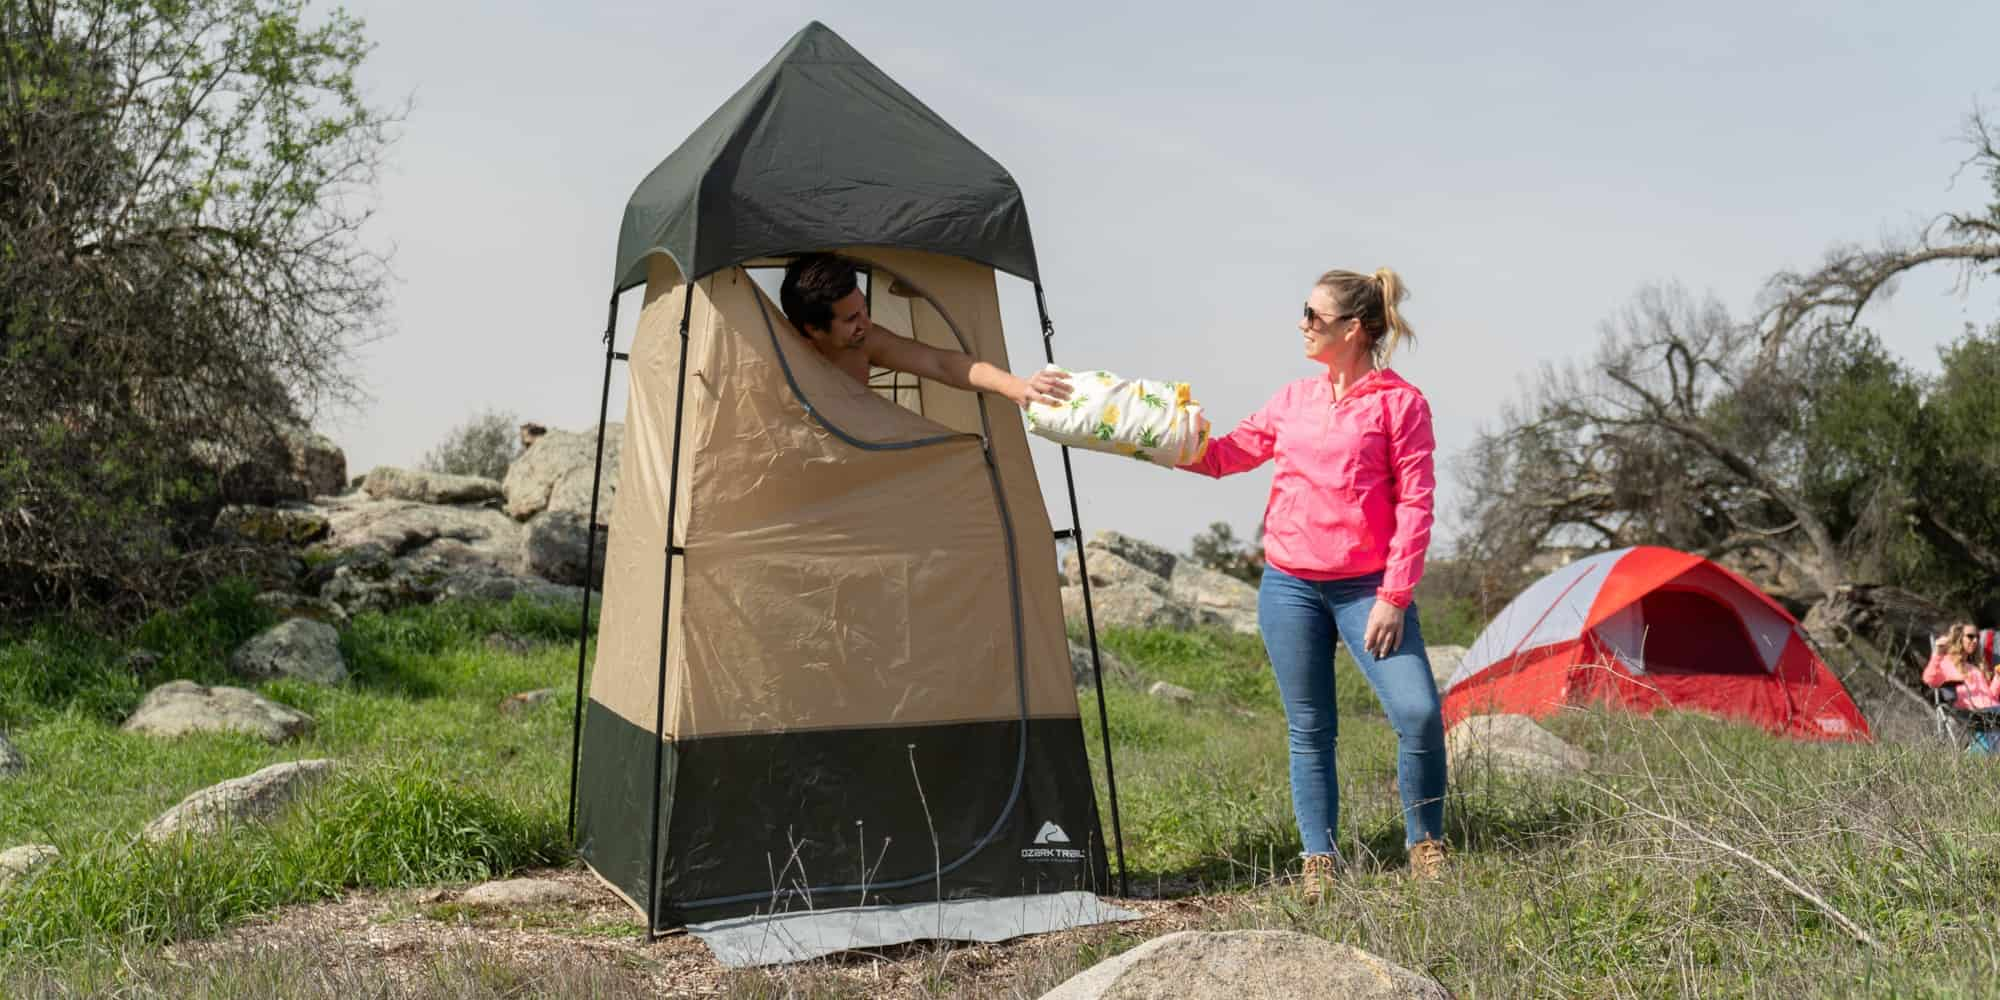 10 Best Portable Camping Shower Tents Reviews – Buyer Guide 2021